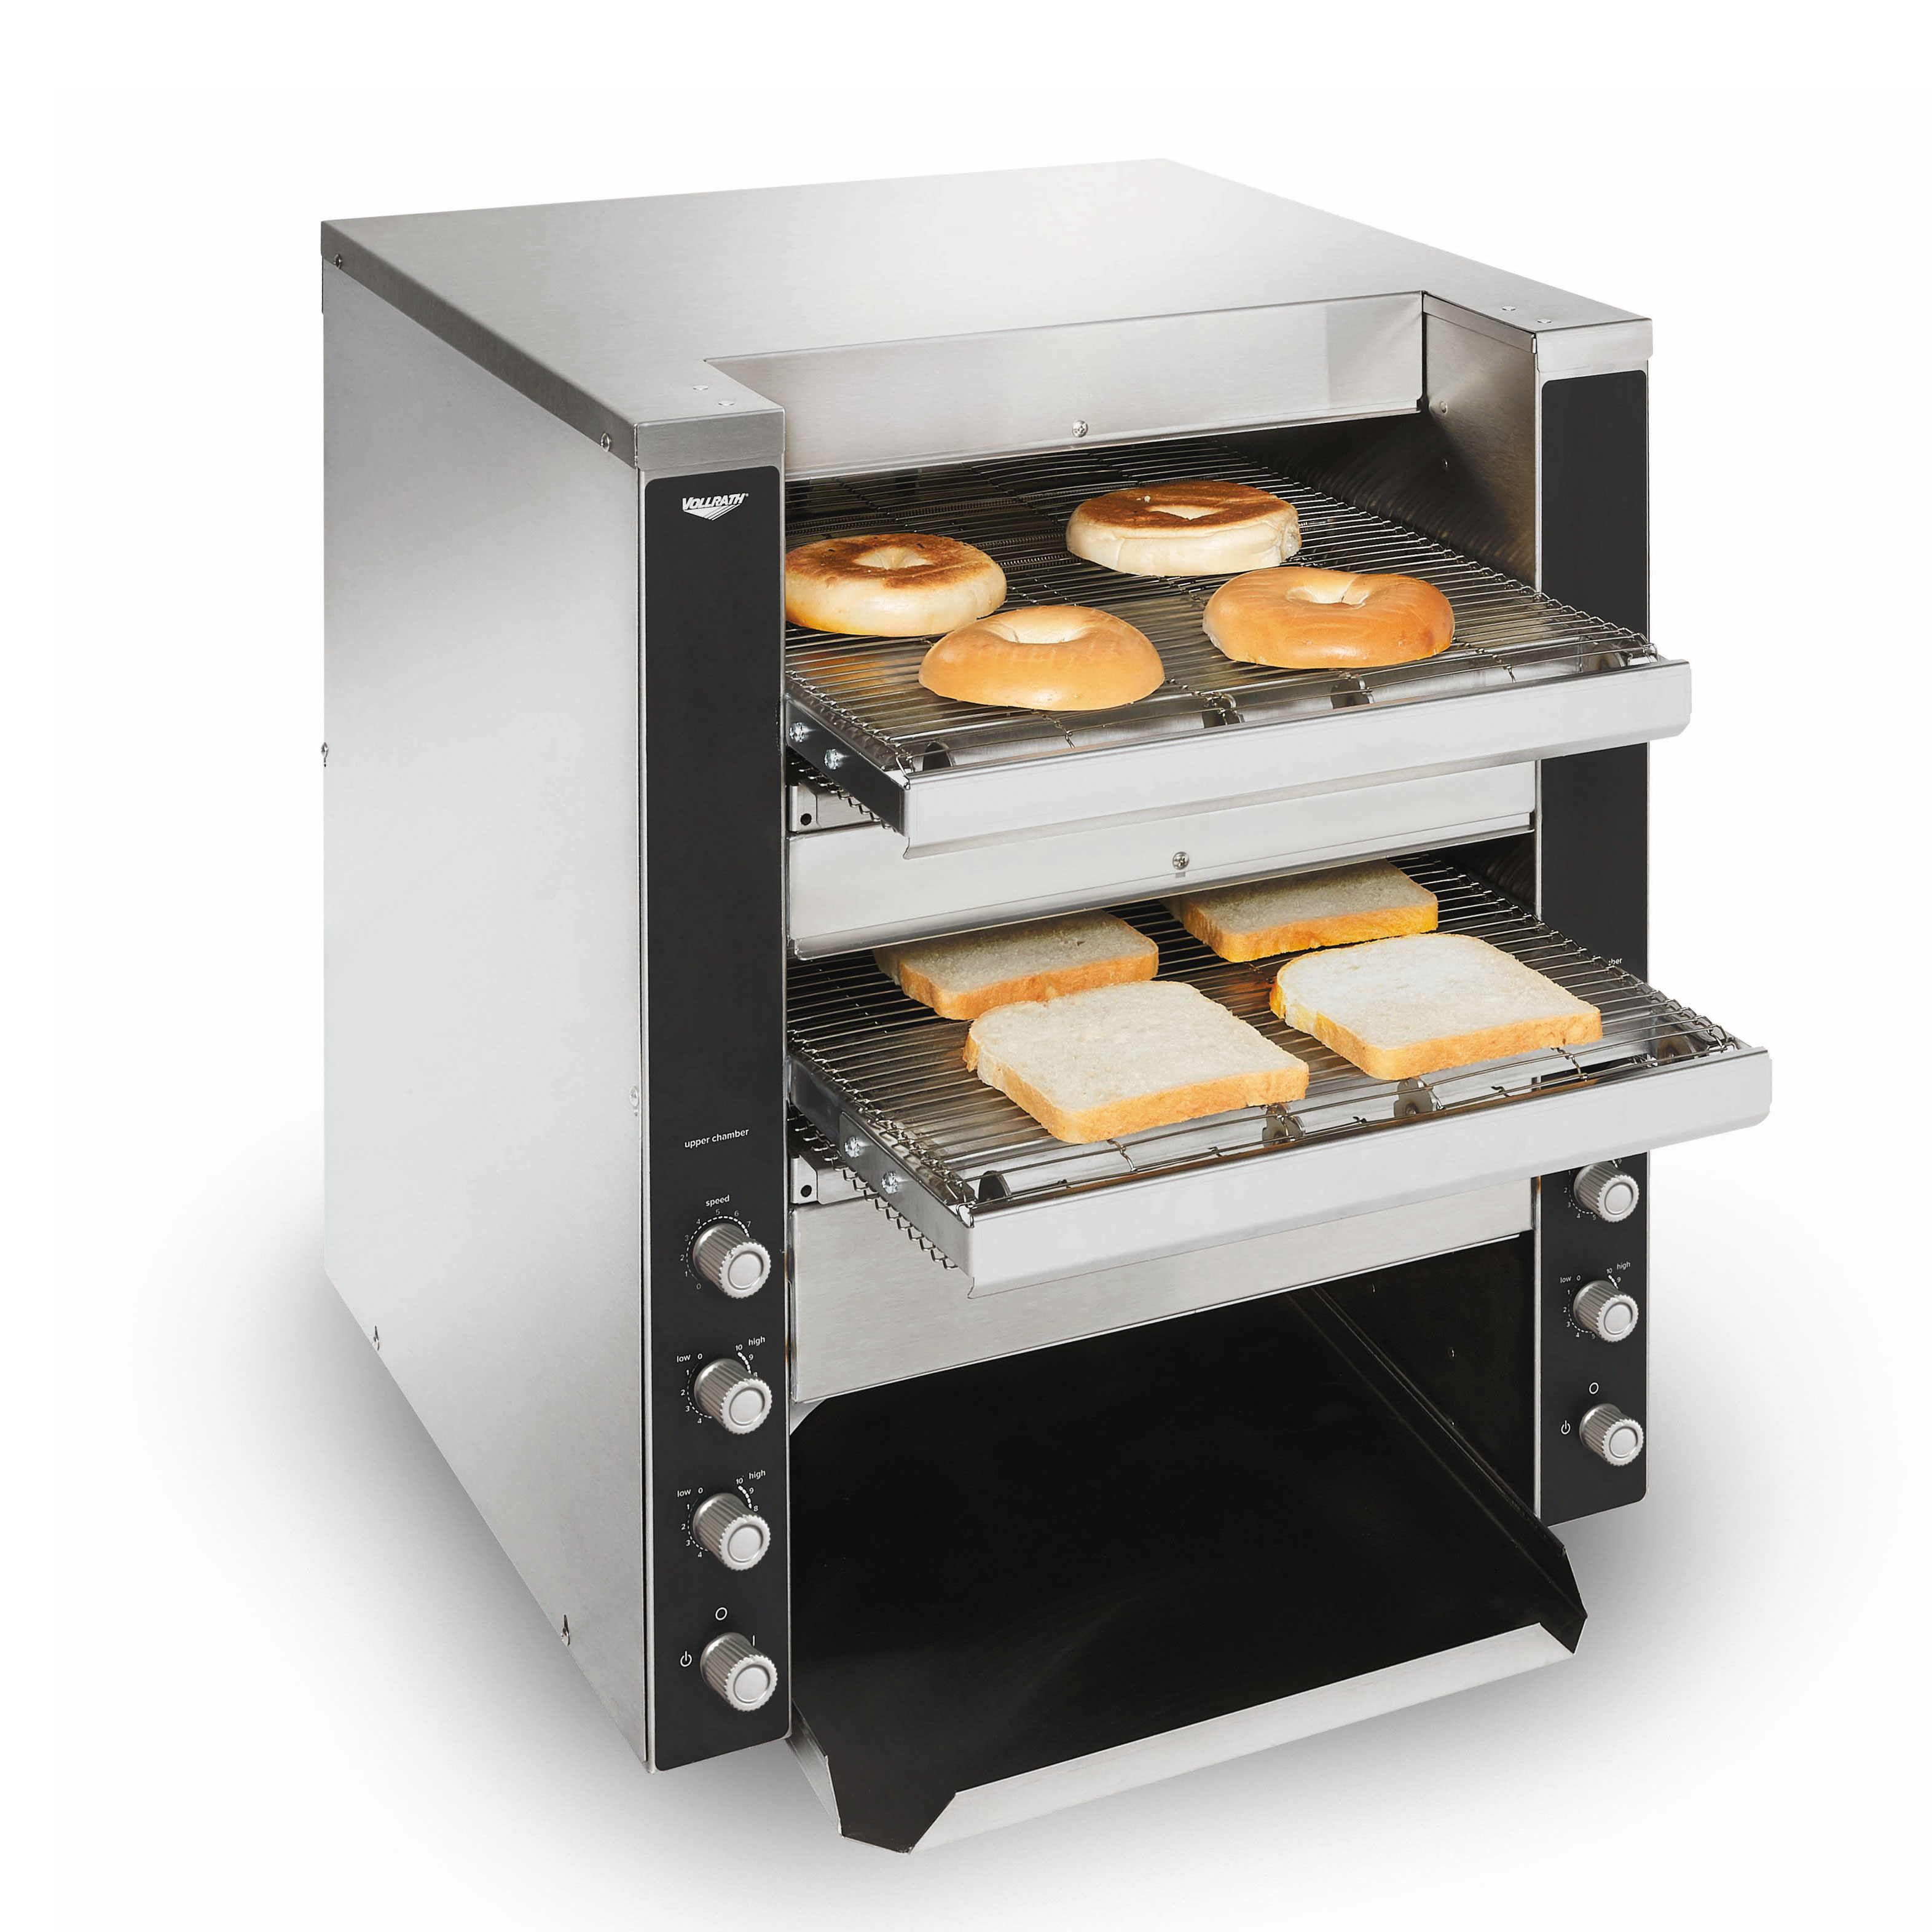 Vollrath CT4-220DUAL toaster, conveyor type